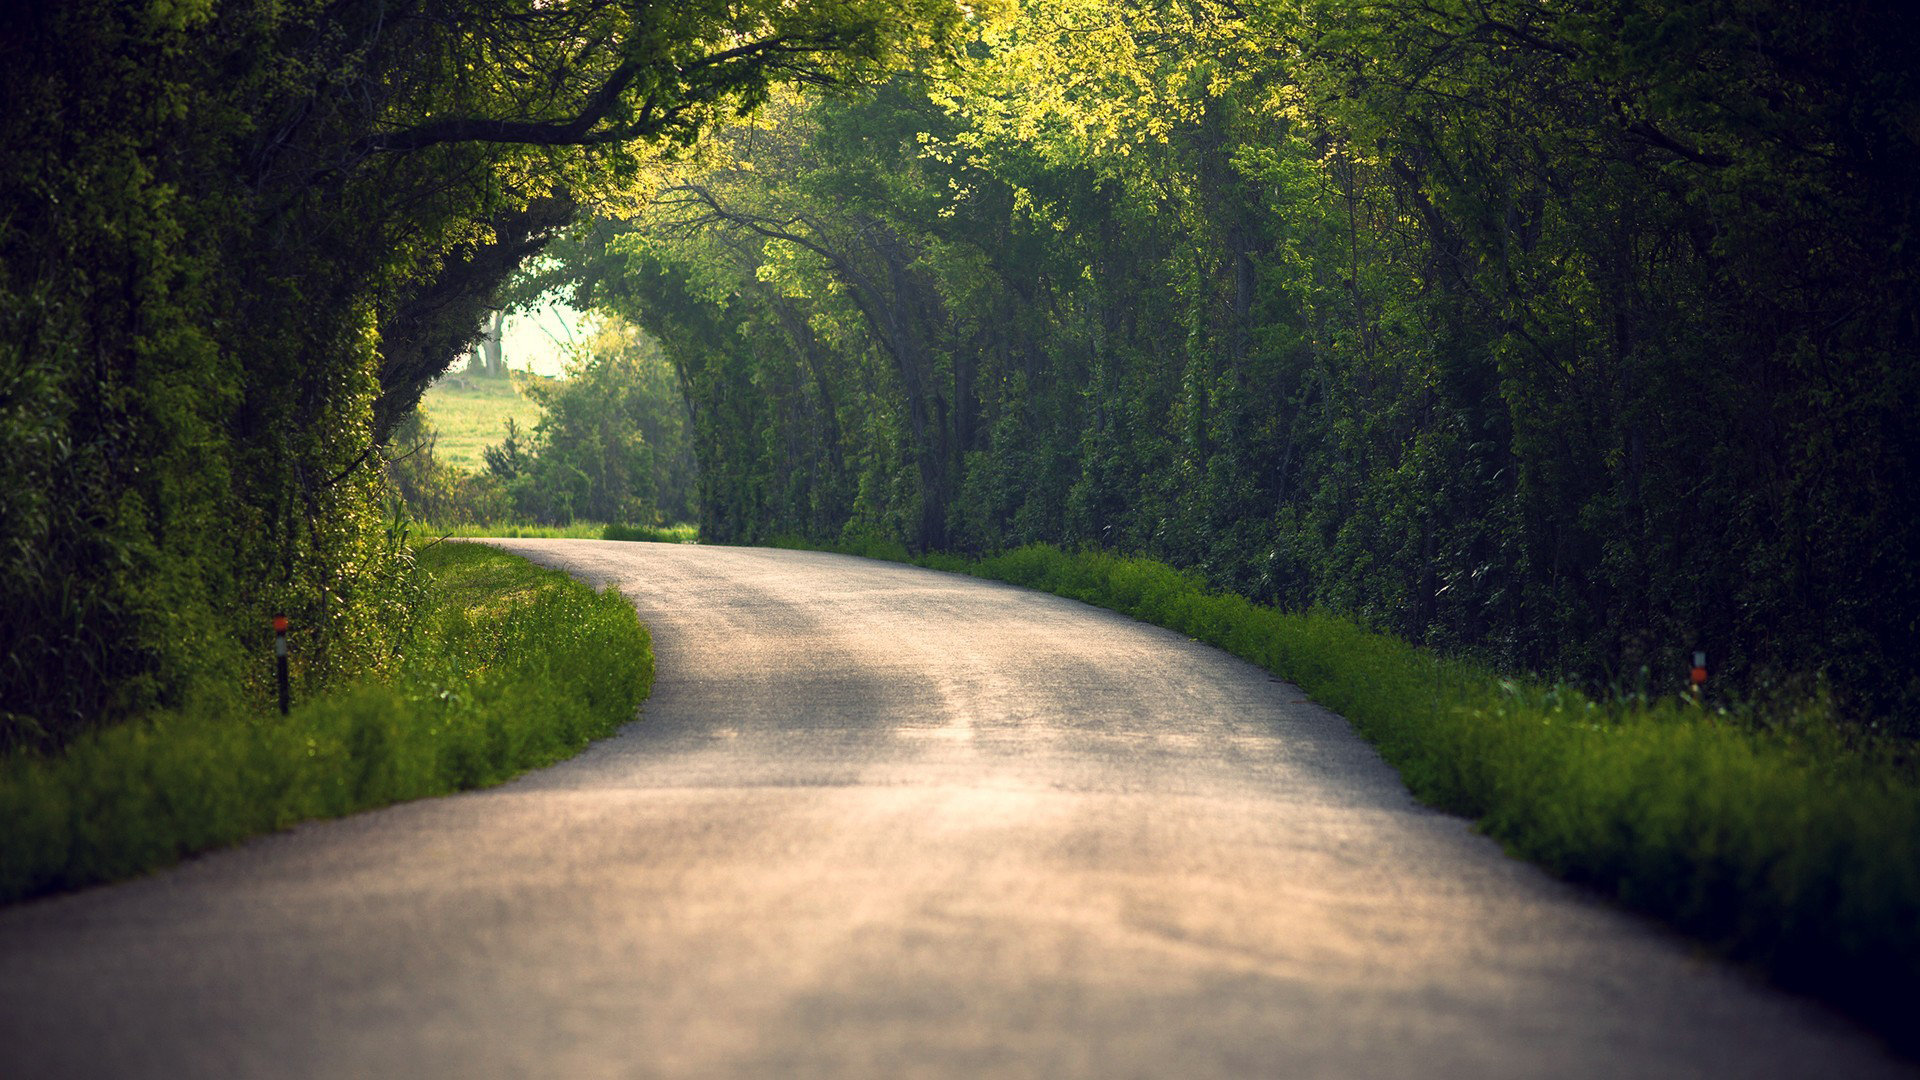 Best Road Wallpaper Id 490971 For High Resolution Full Hd Computer